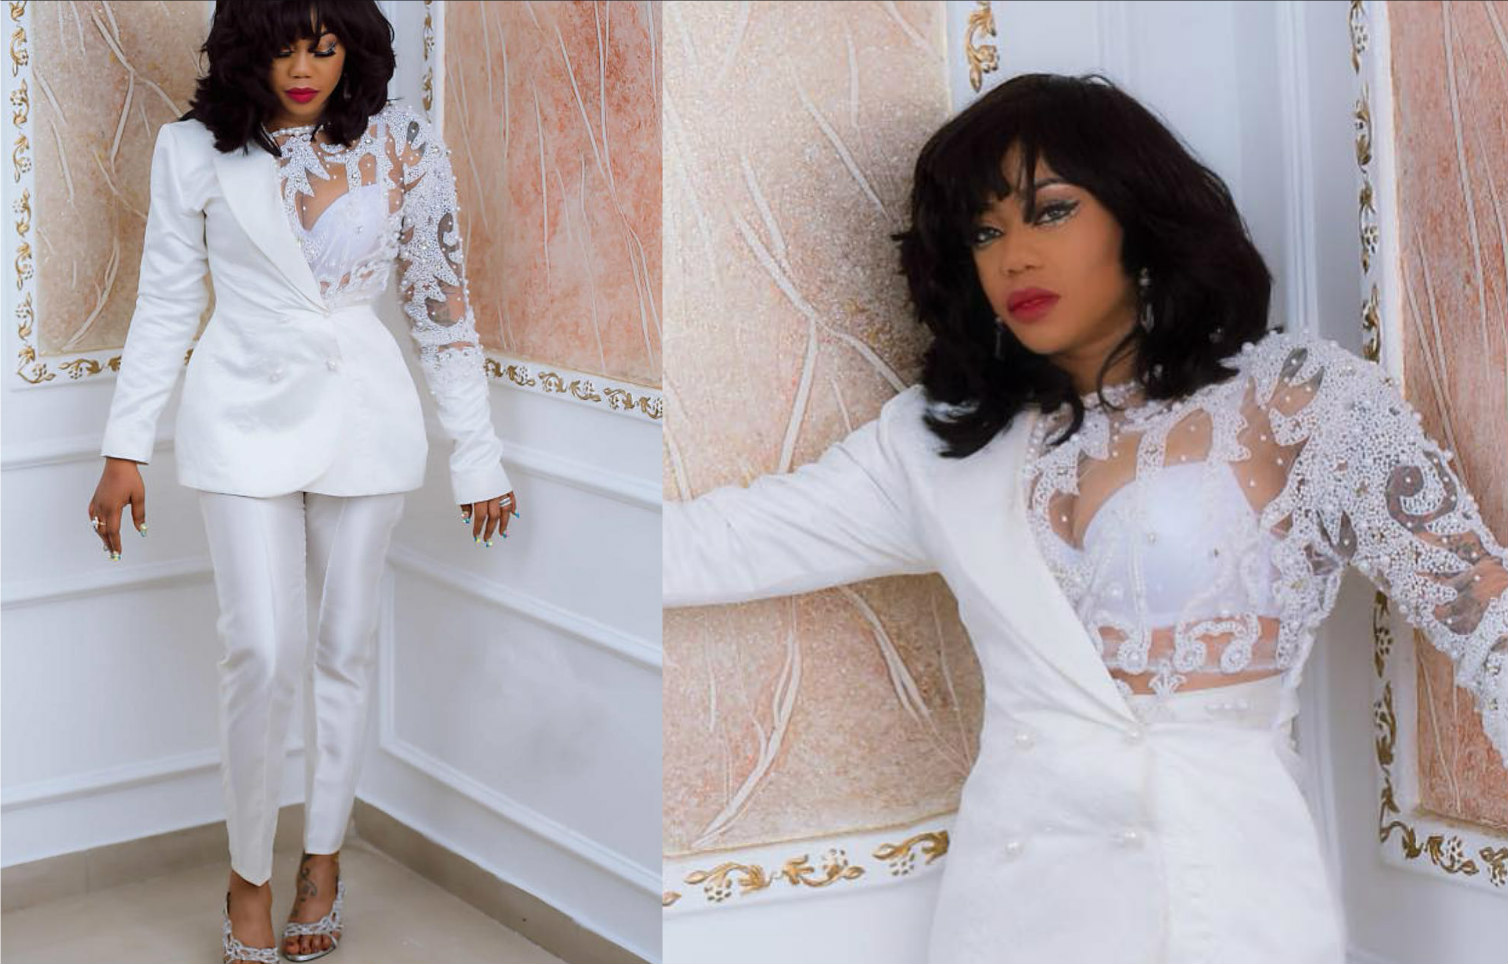 elegant-colourful-sophisticated-toyin-lawani-proves-king-fashion-birthday-photoshoot-srcelebrations